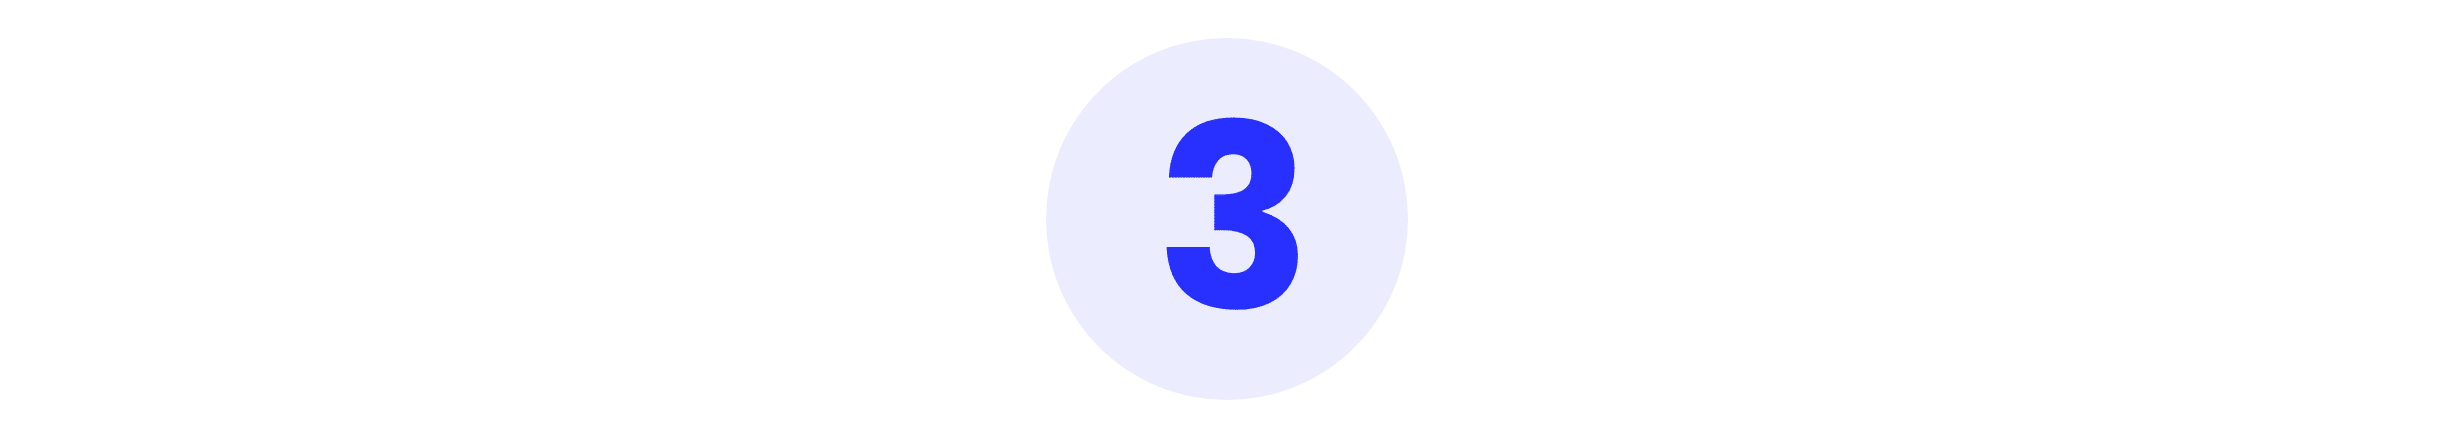 number-3@2x-compressed